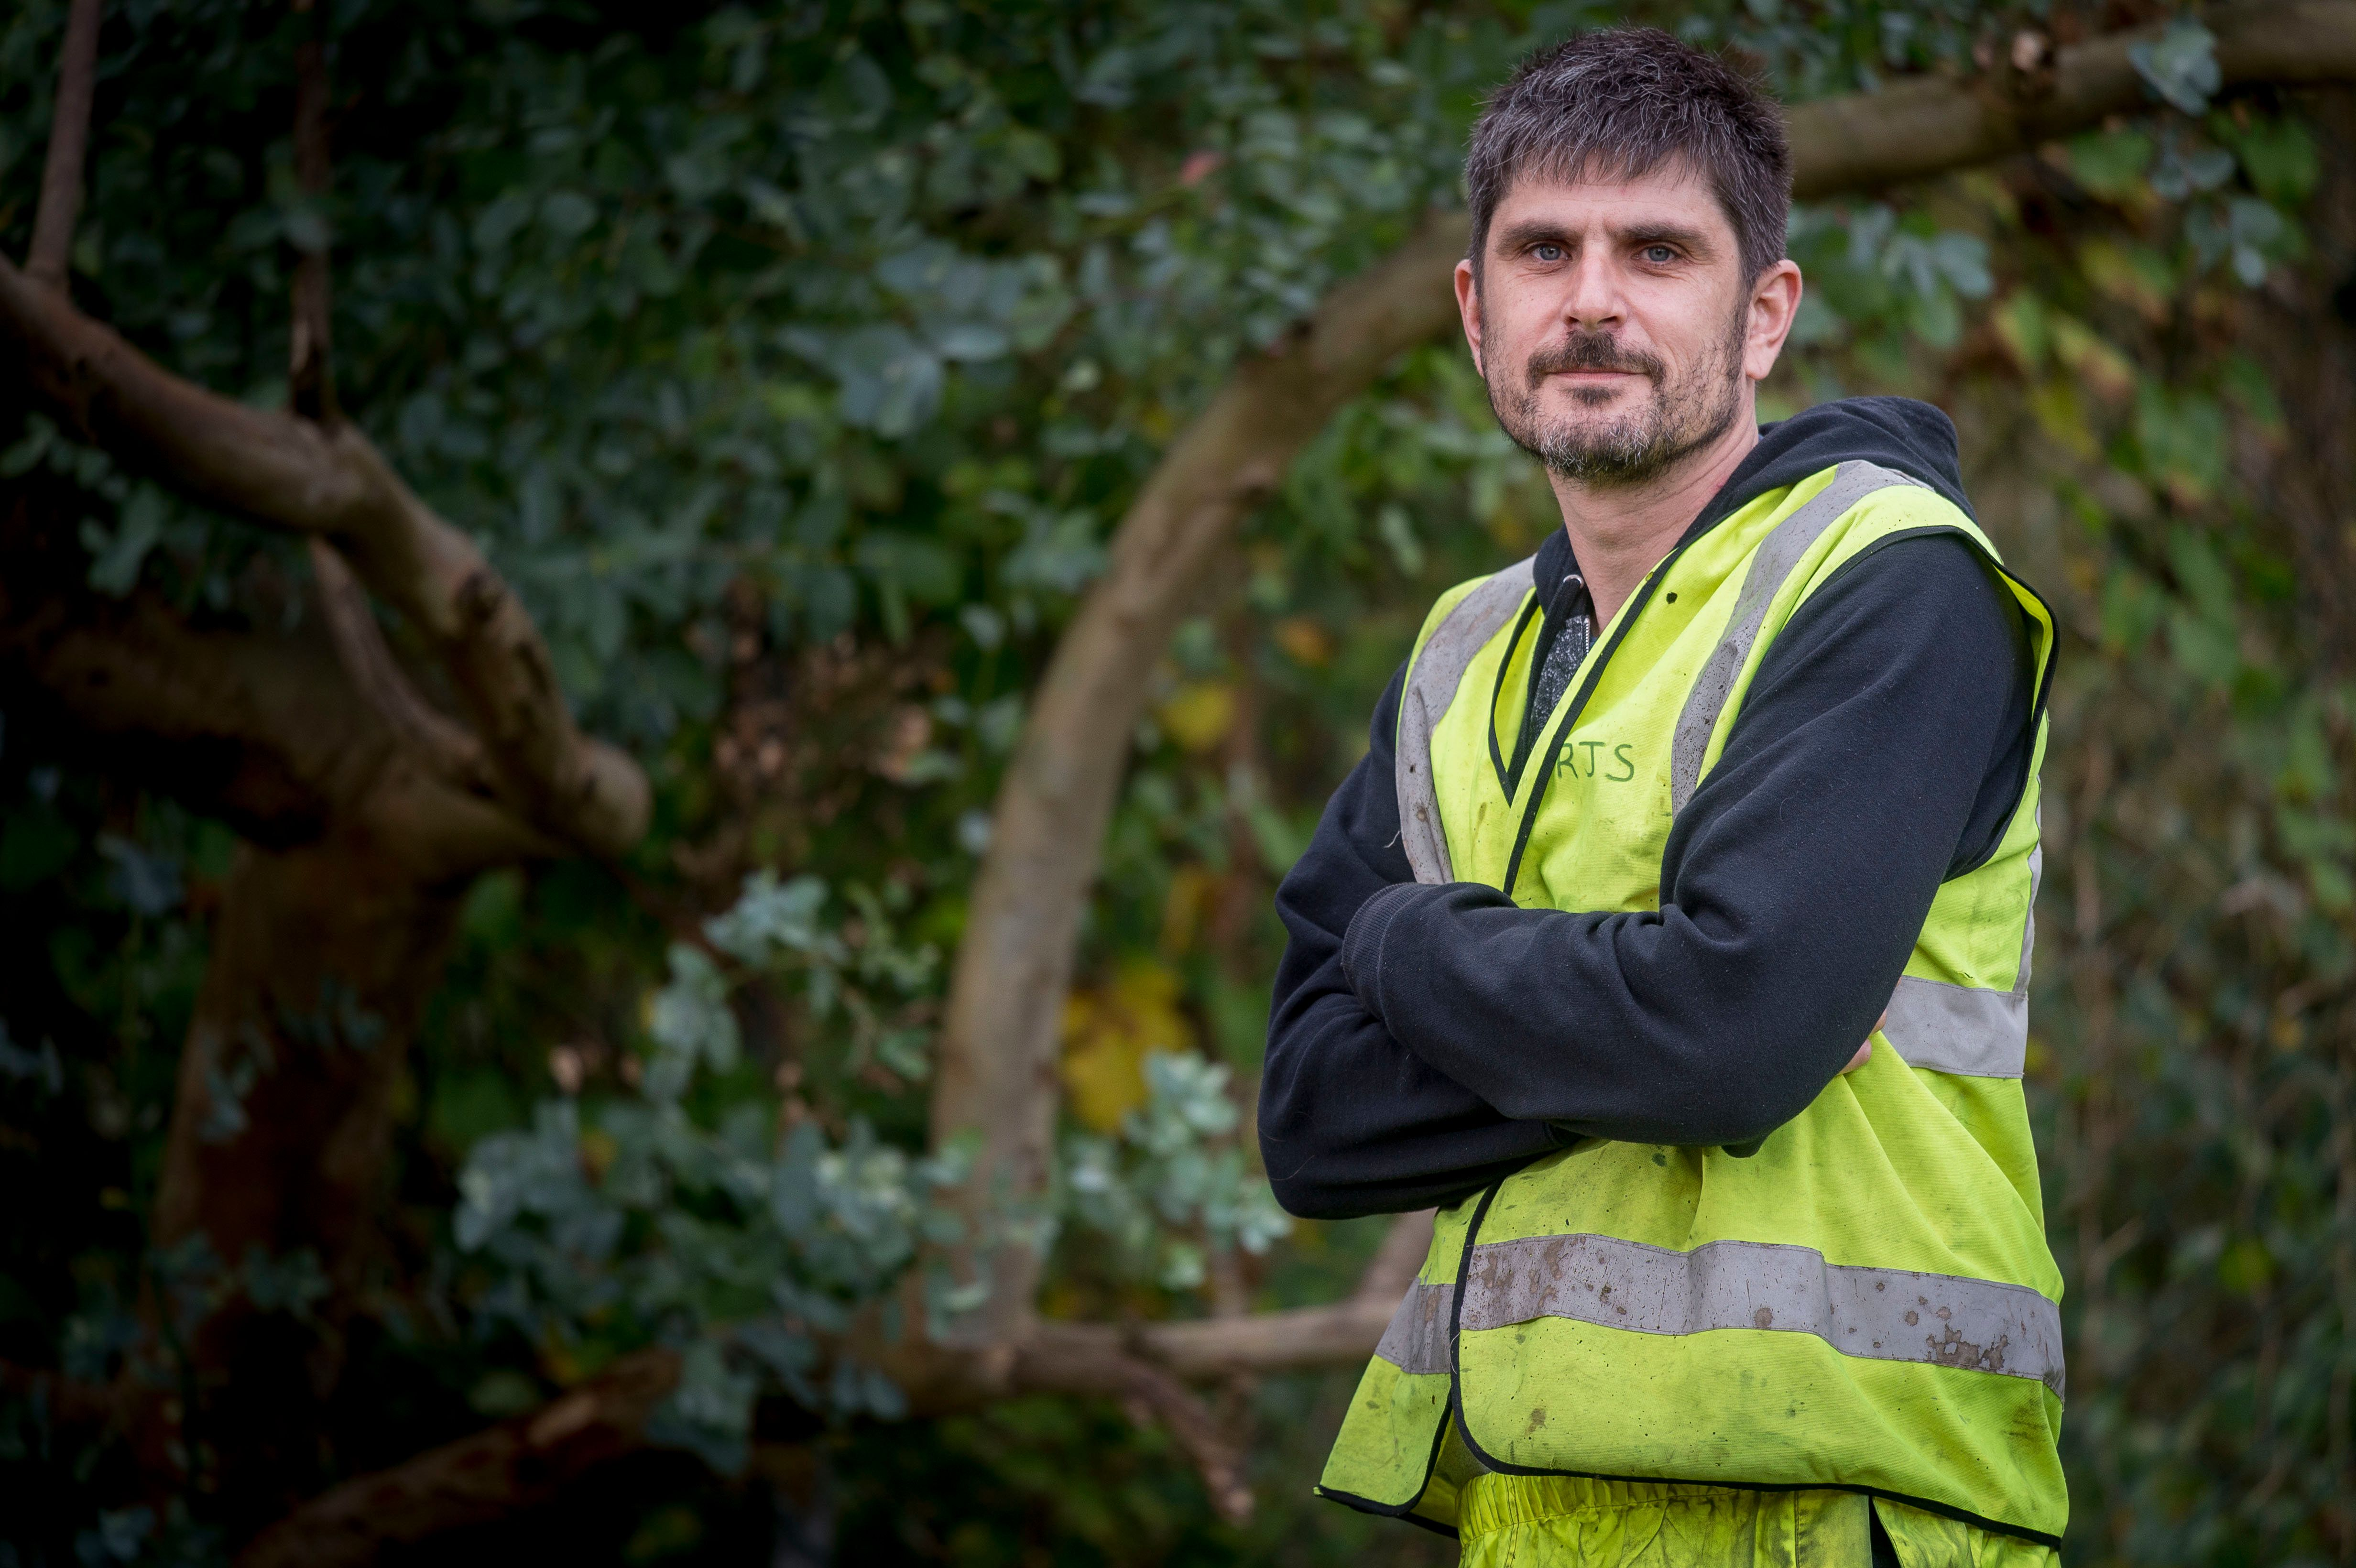 Self-employed welder Andy White from Gorelston, Norfolk, has been left with less than £100 after...